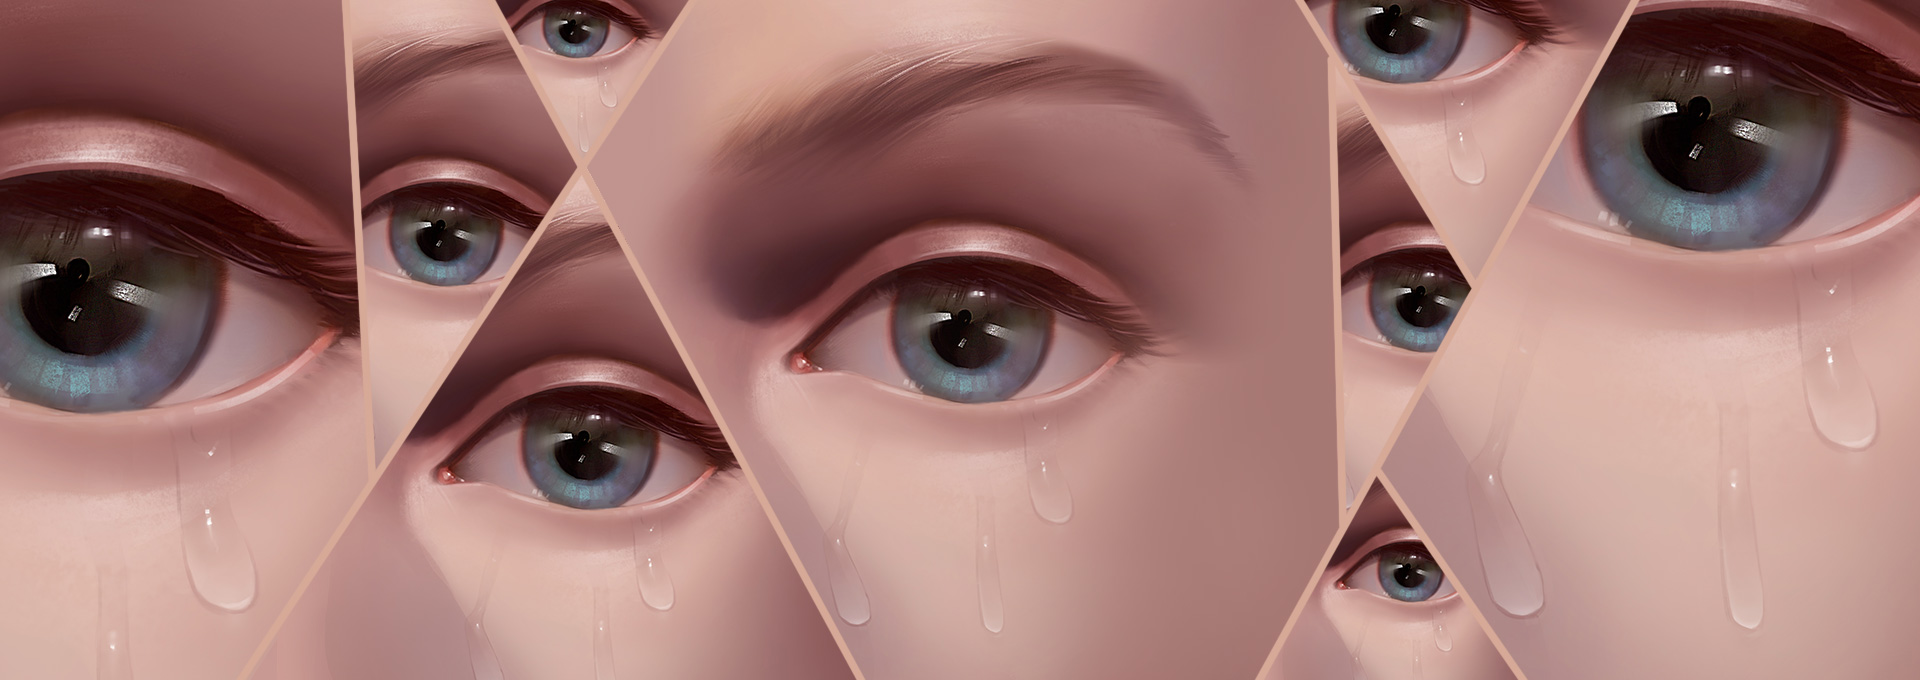 How to Paint Realistic Tears and Water Droplets in Adobe Photoshop